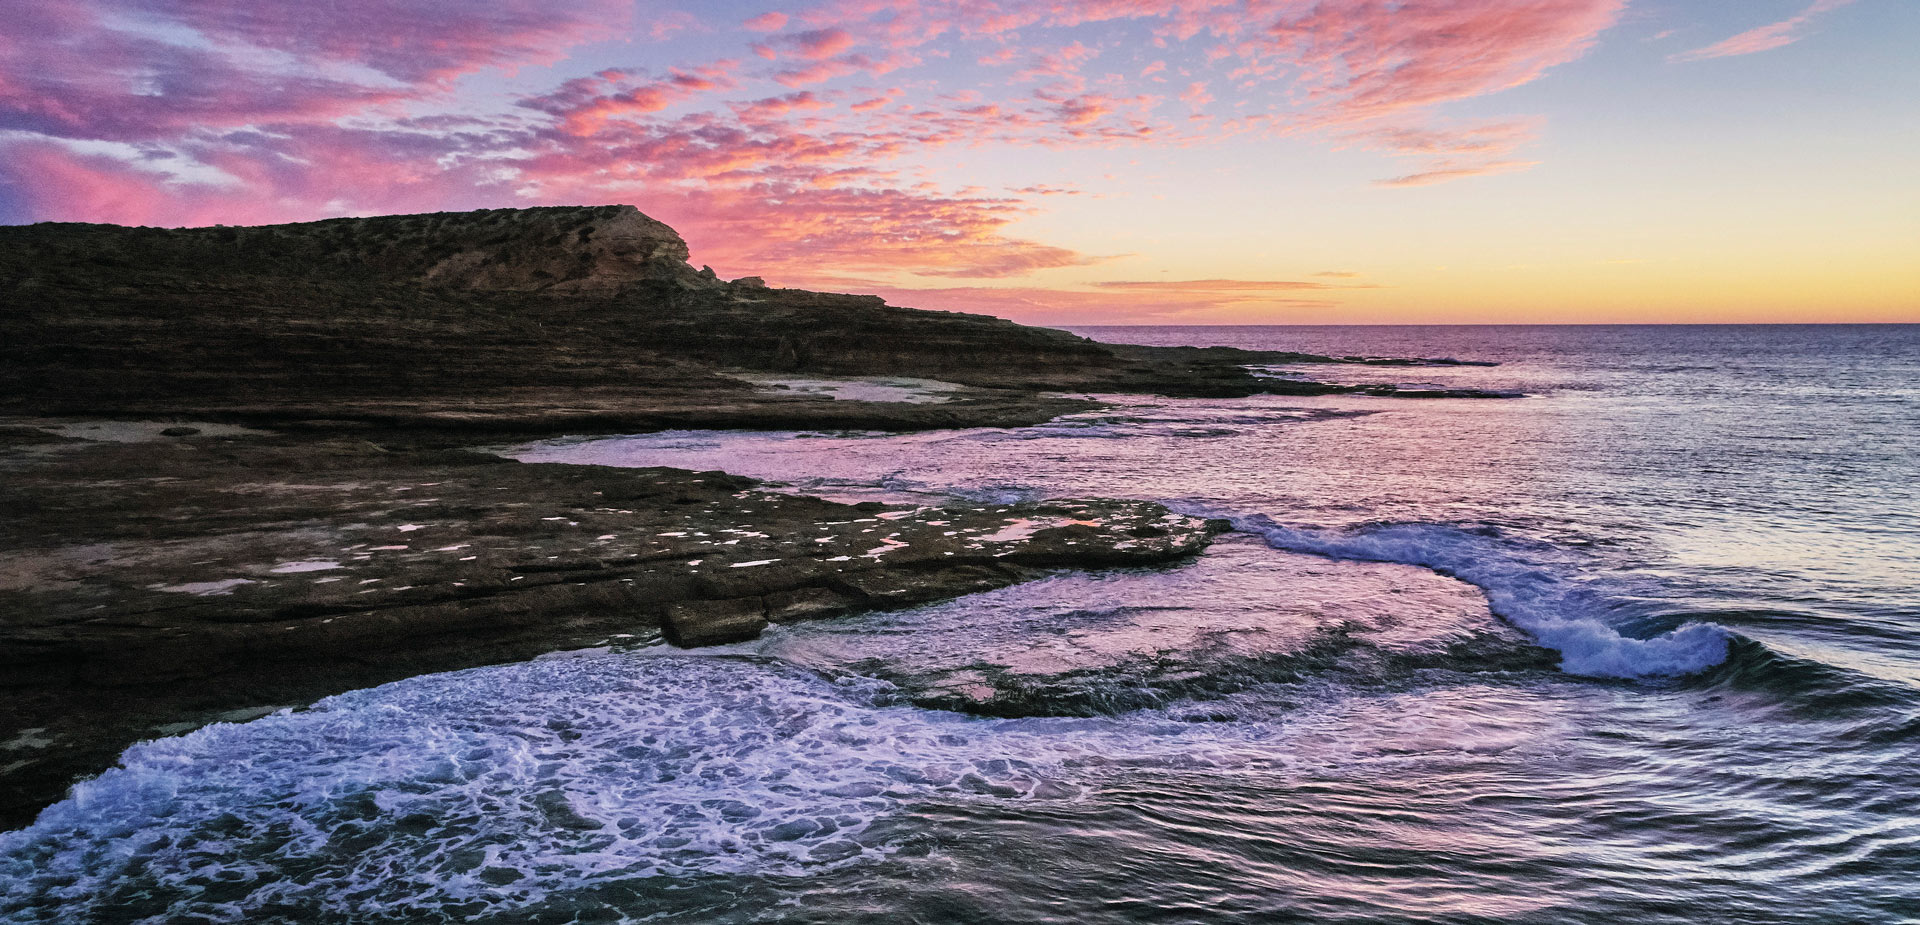 Sunset at Red Bluff, near Kalbarri